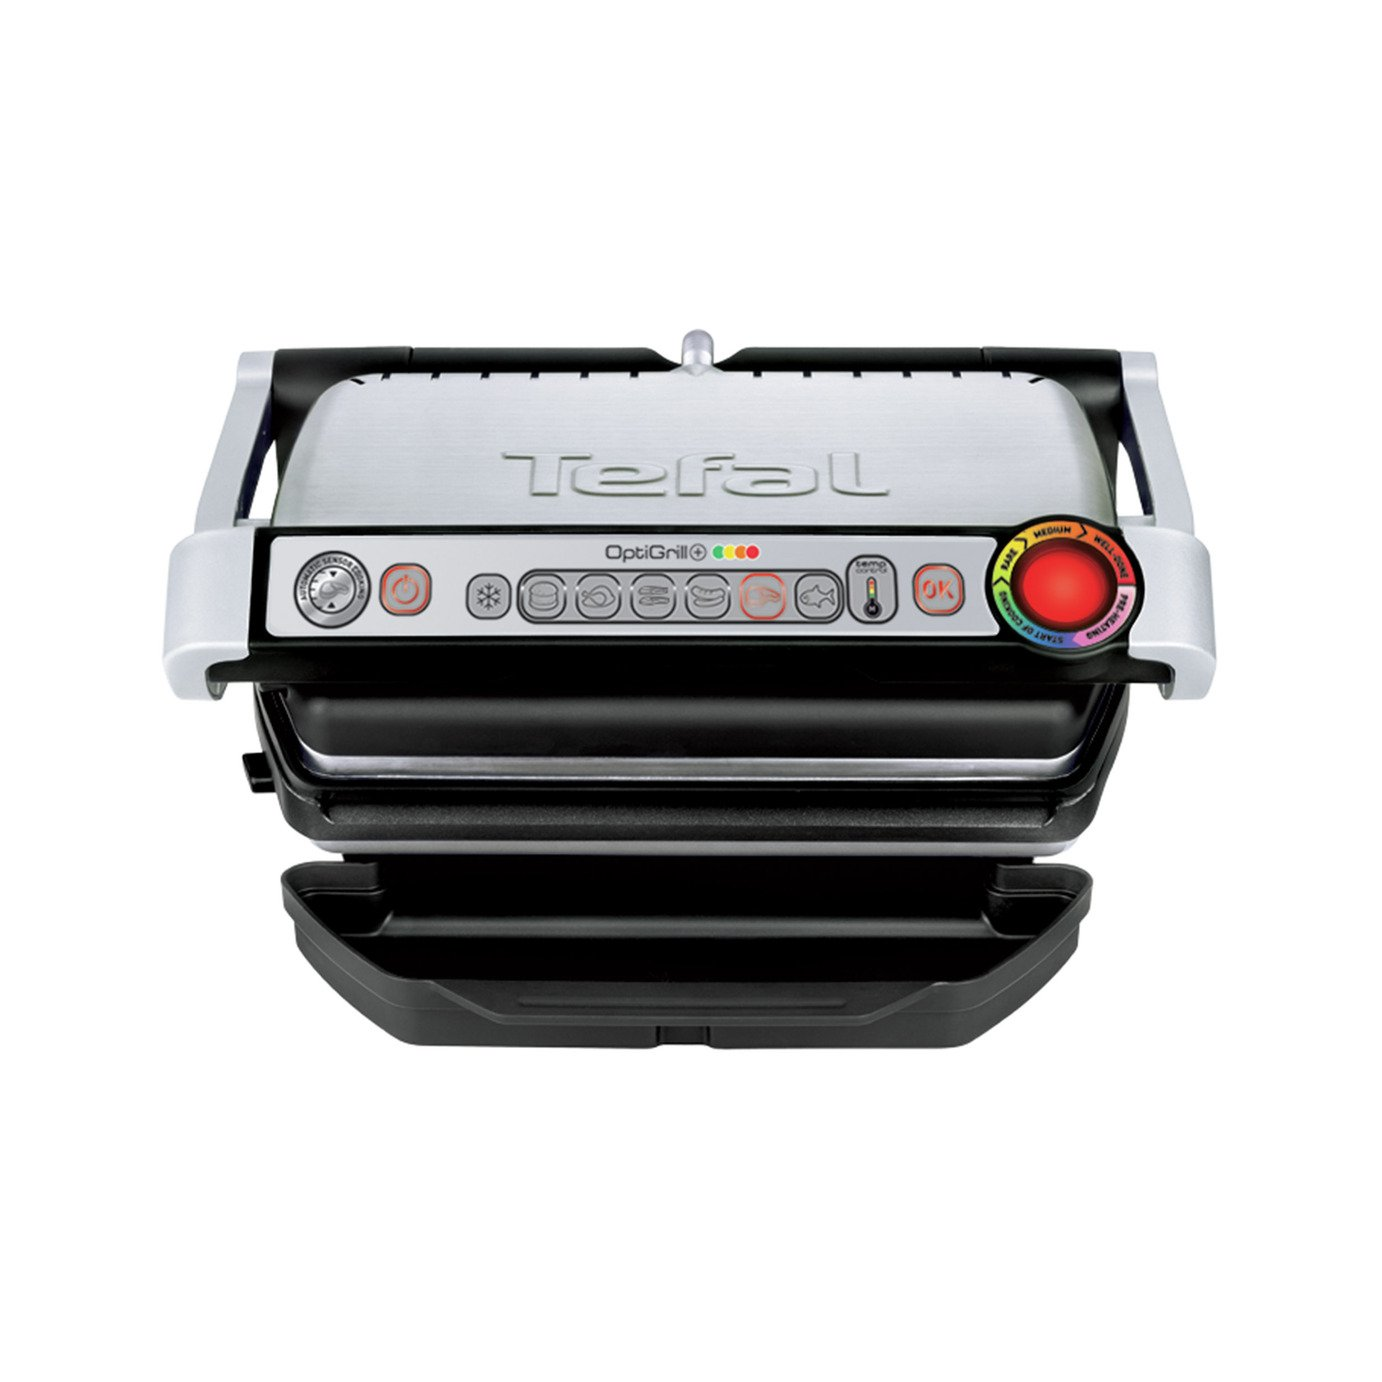 Tefal - GC713D40 OptiGrill Plus Health Grill from Tefal